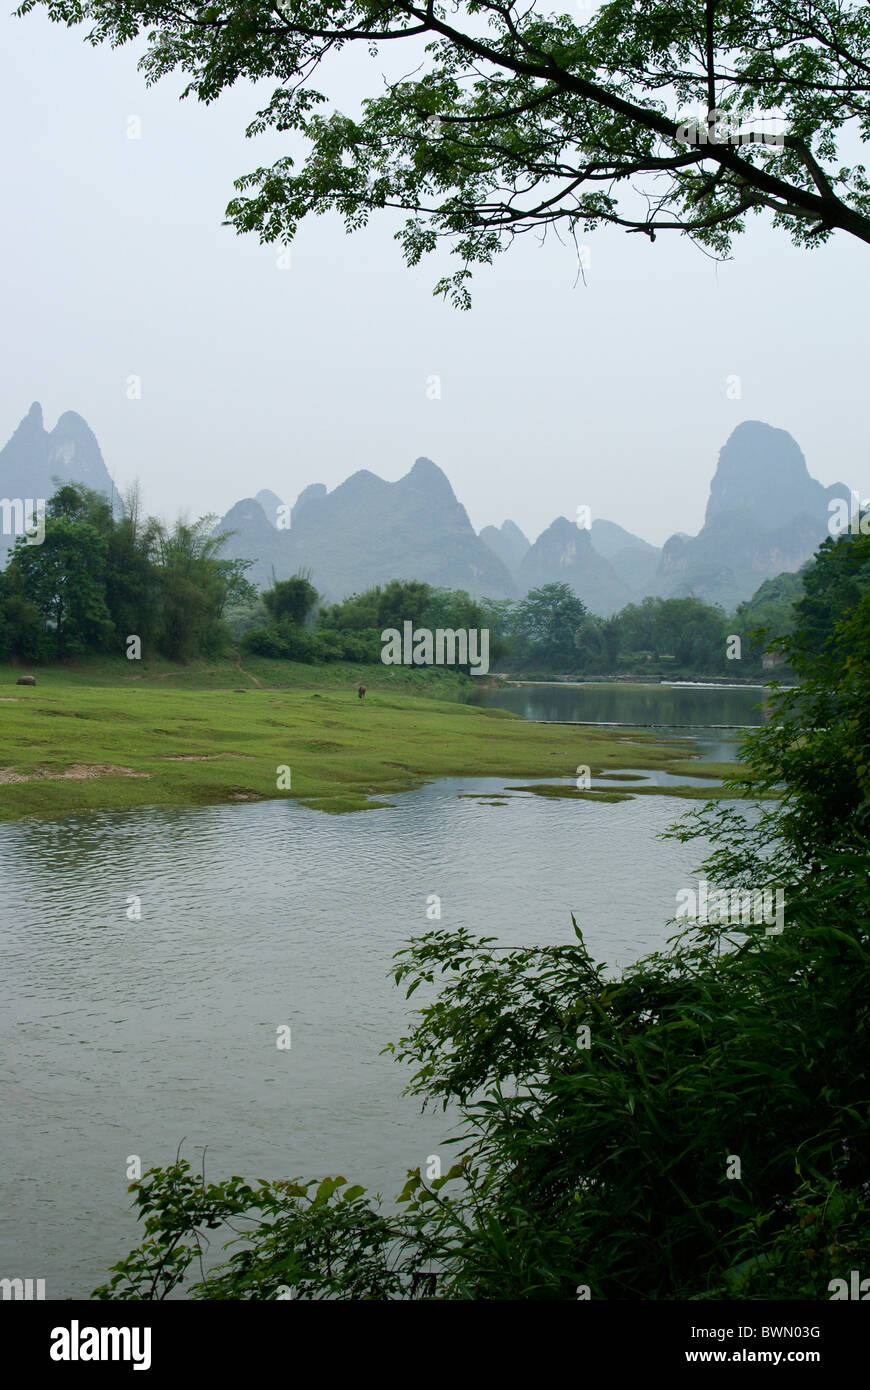 Karst mountains and Li River at Fuli, Guangxi, China Stock Photo